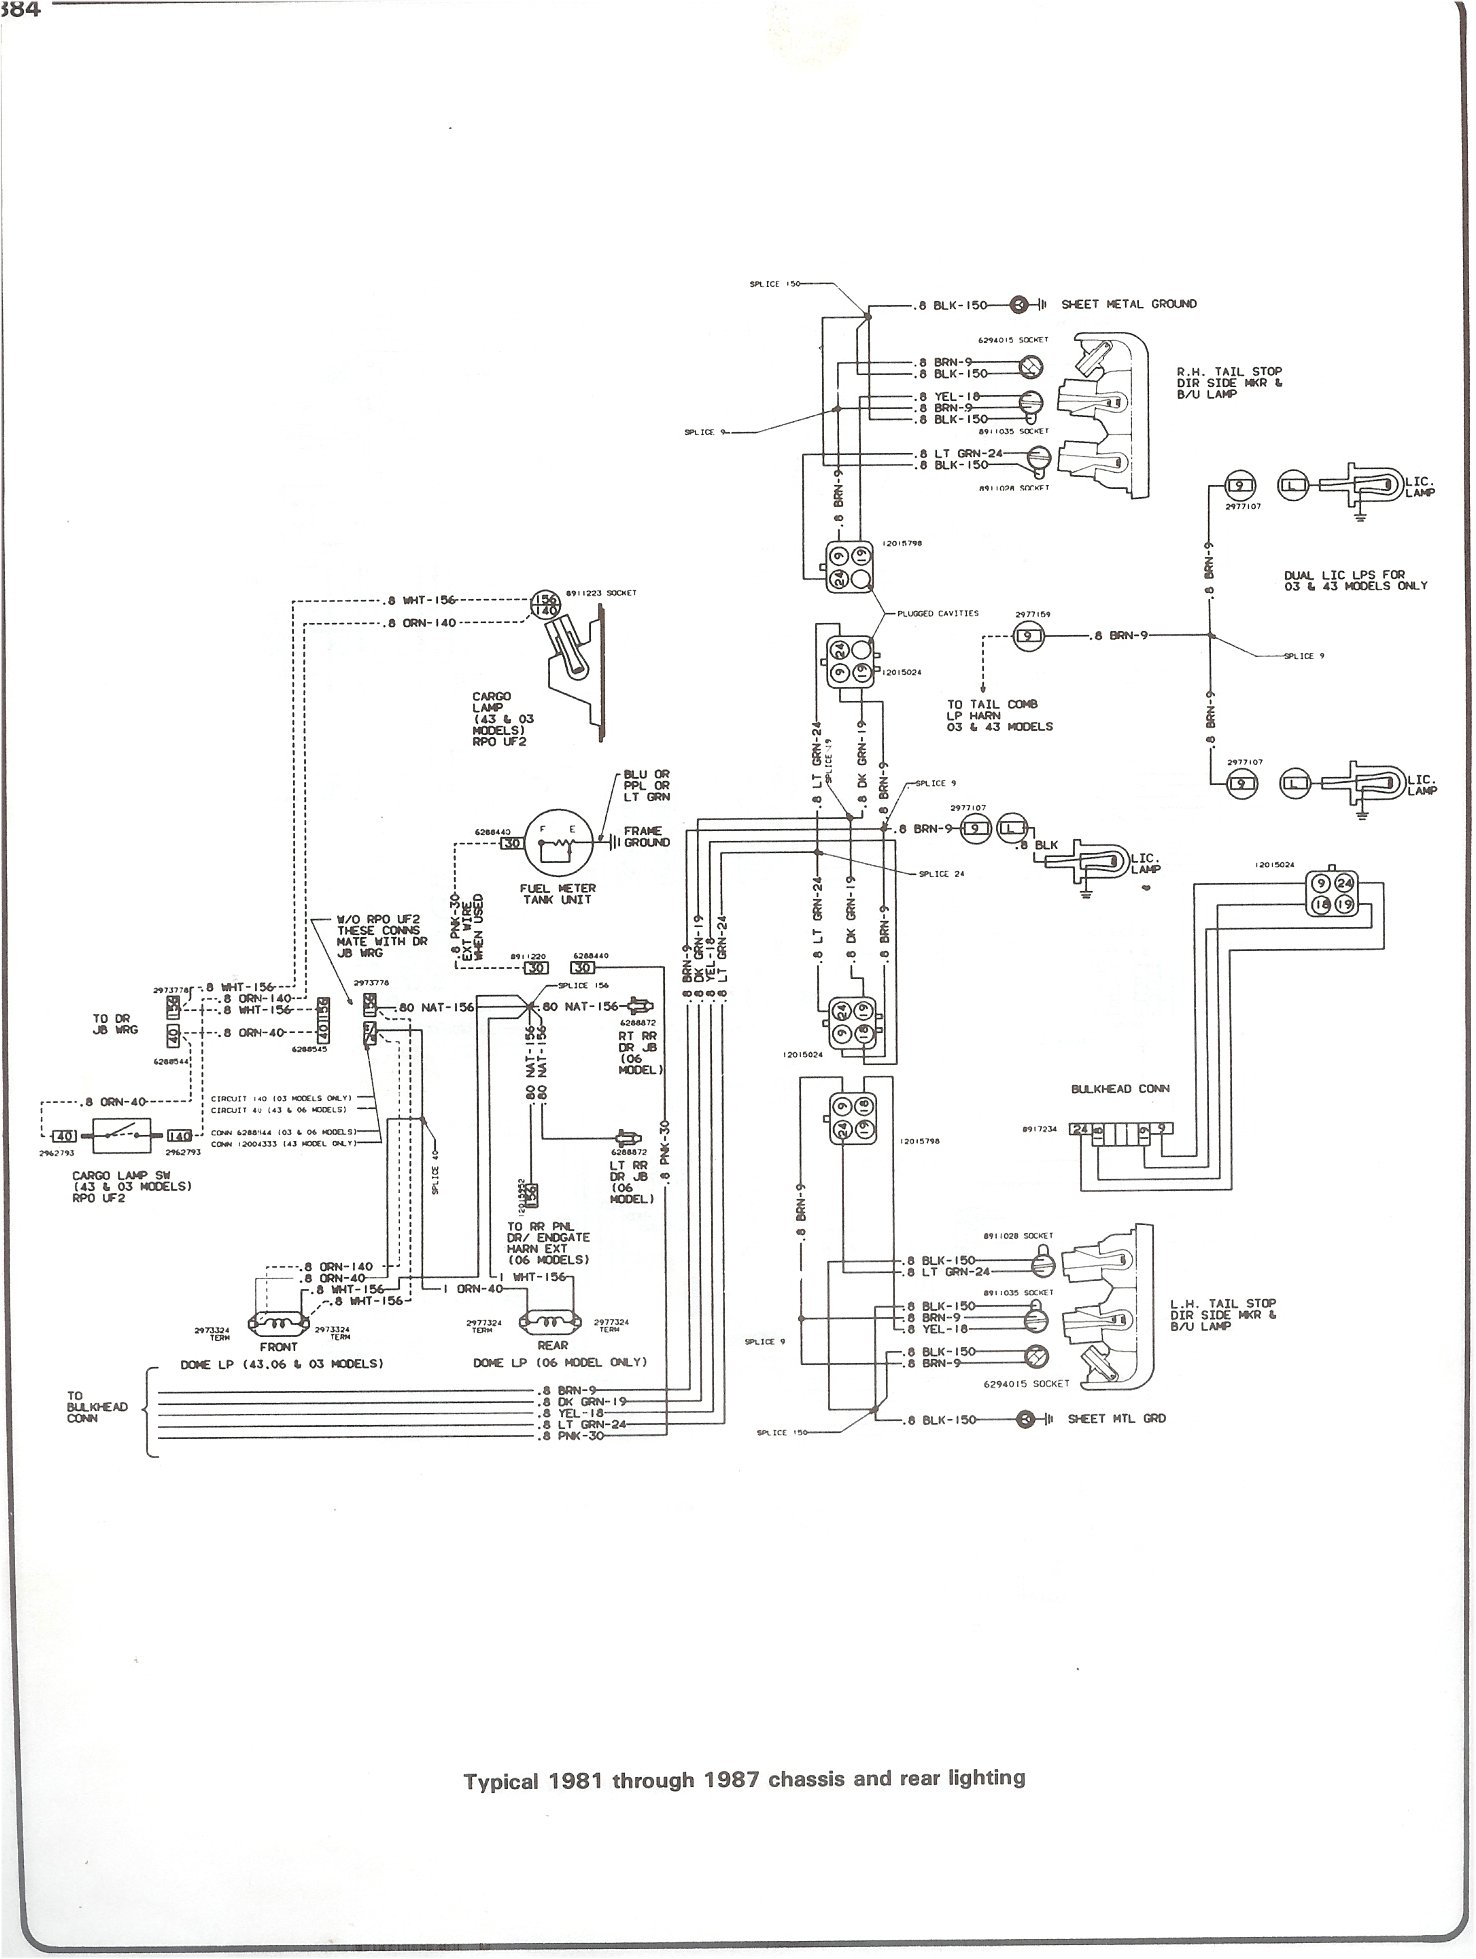 1995 P30 Wiring Diagram List Of Schematic Circuit Honda D15 Engine 83 Opinions About U2022 Rh Voterid Co